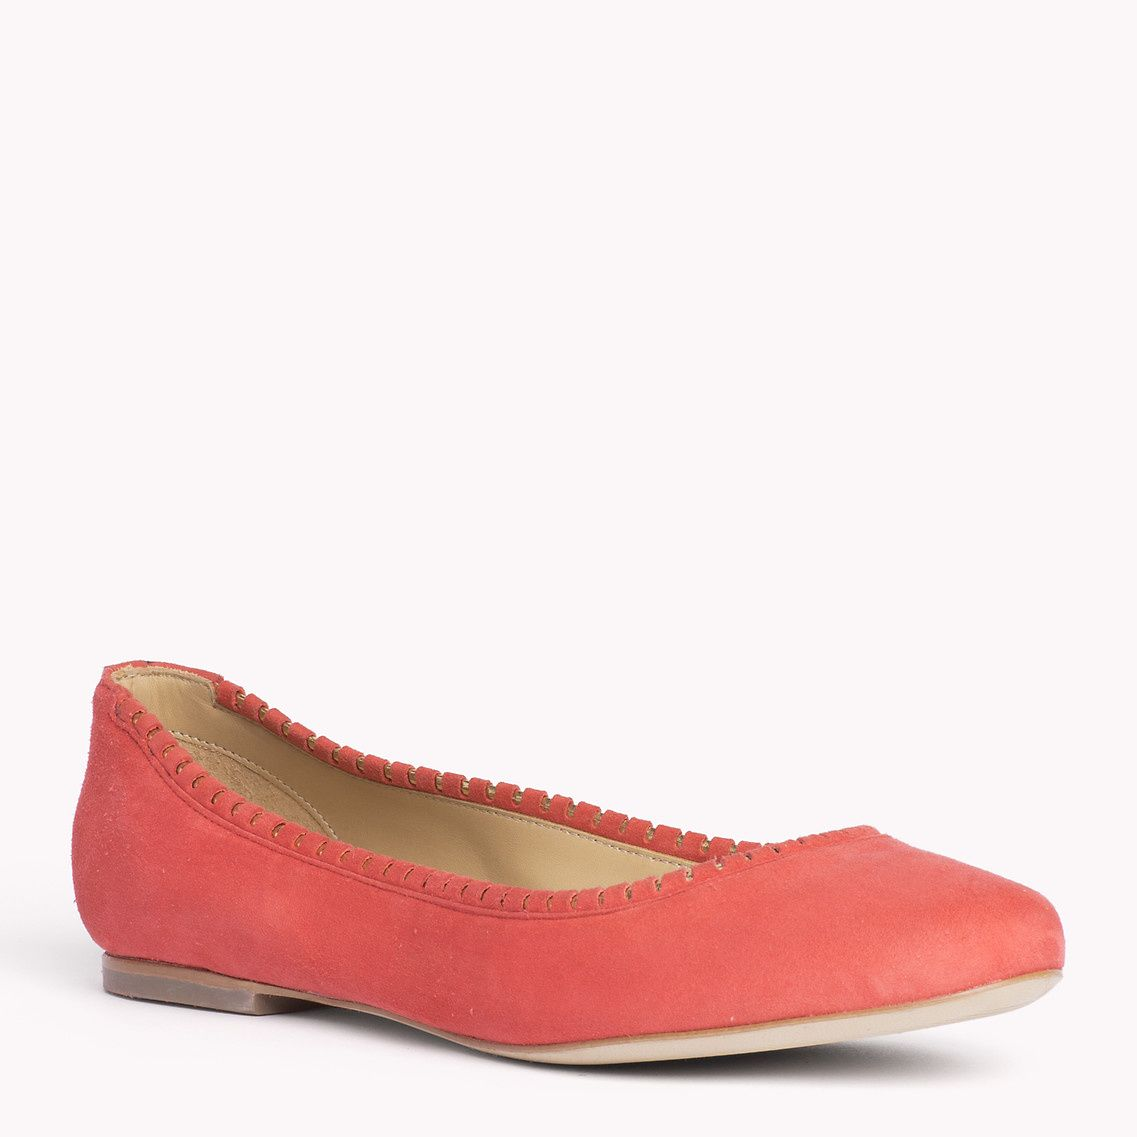 promo code 1926b 30211 Anne Ballerina #TommyHilfiger | ACCESSORIES S17 | Shoes ...